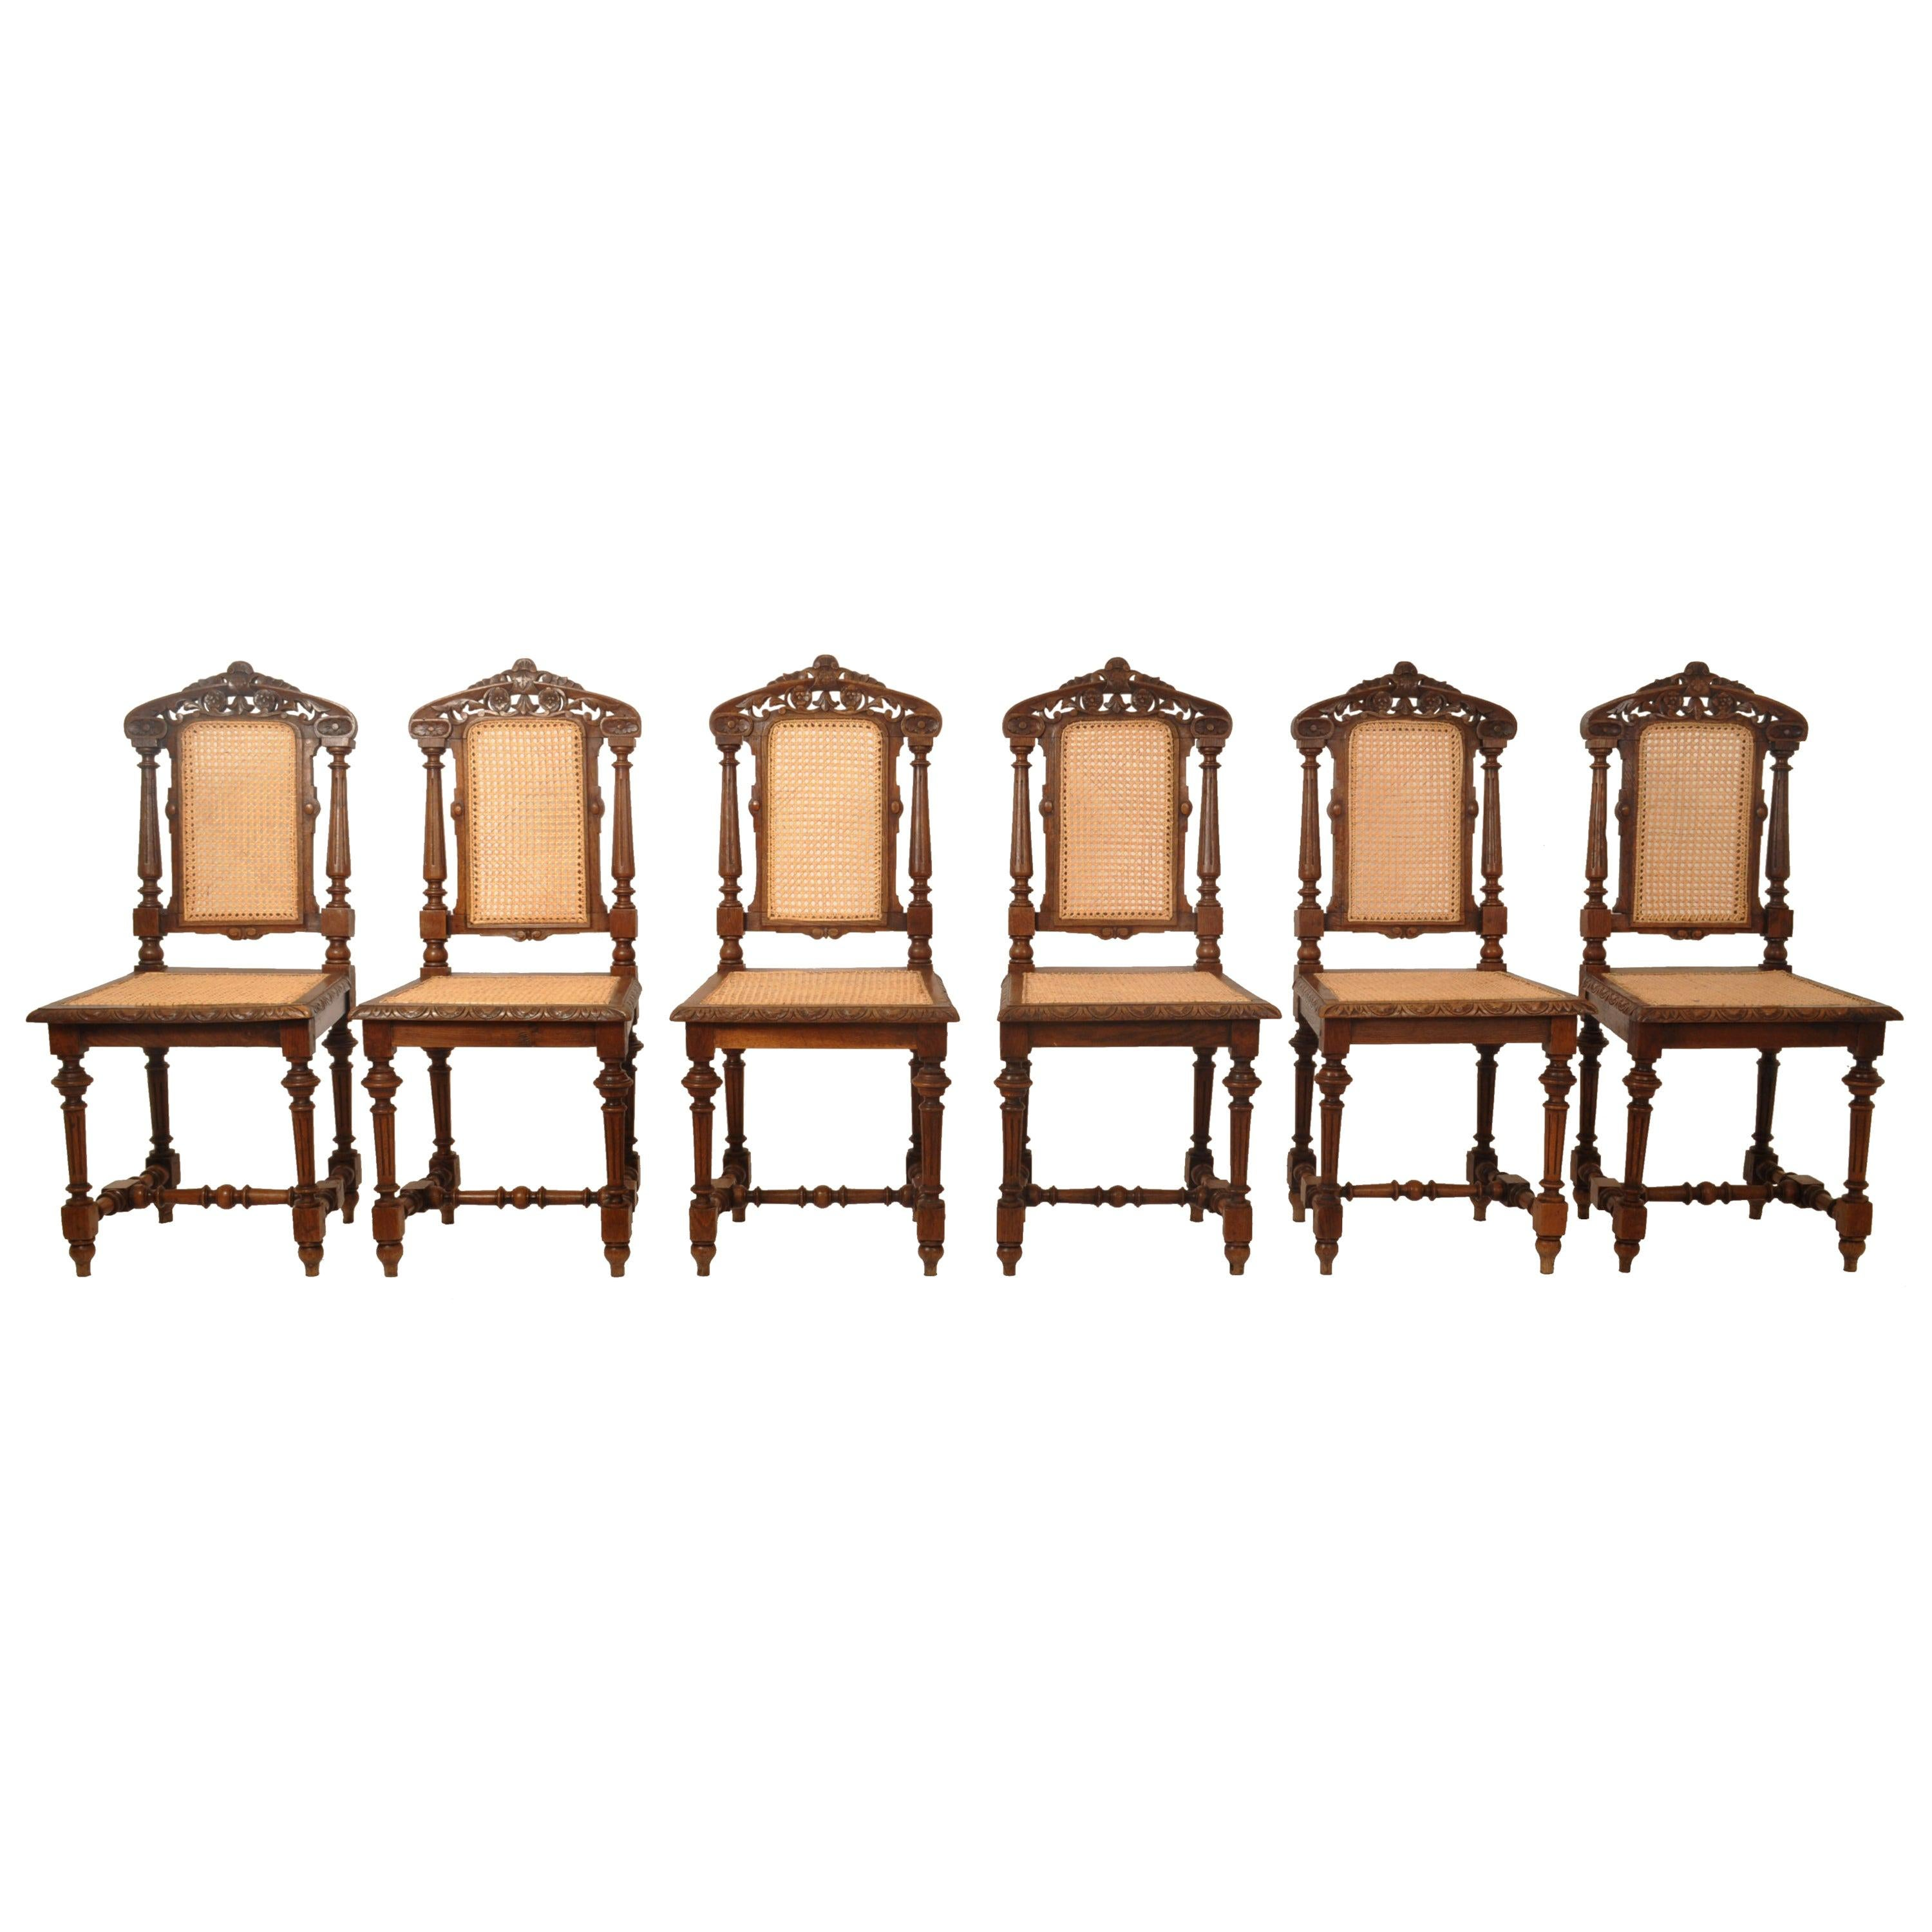 Set Six Antique French Provincial Henri II Carved Oak & Caned Dining Chairs 1880